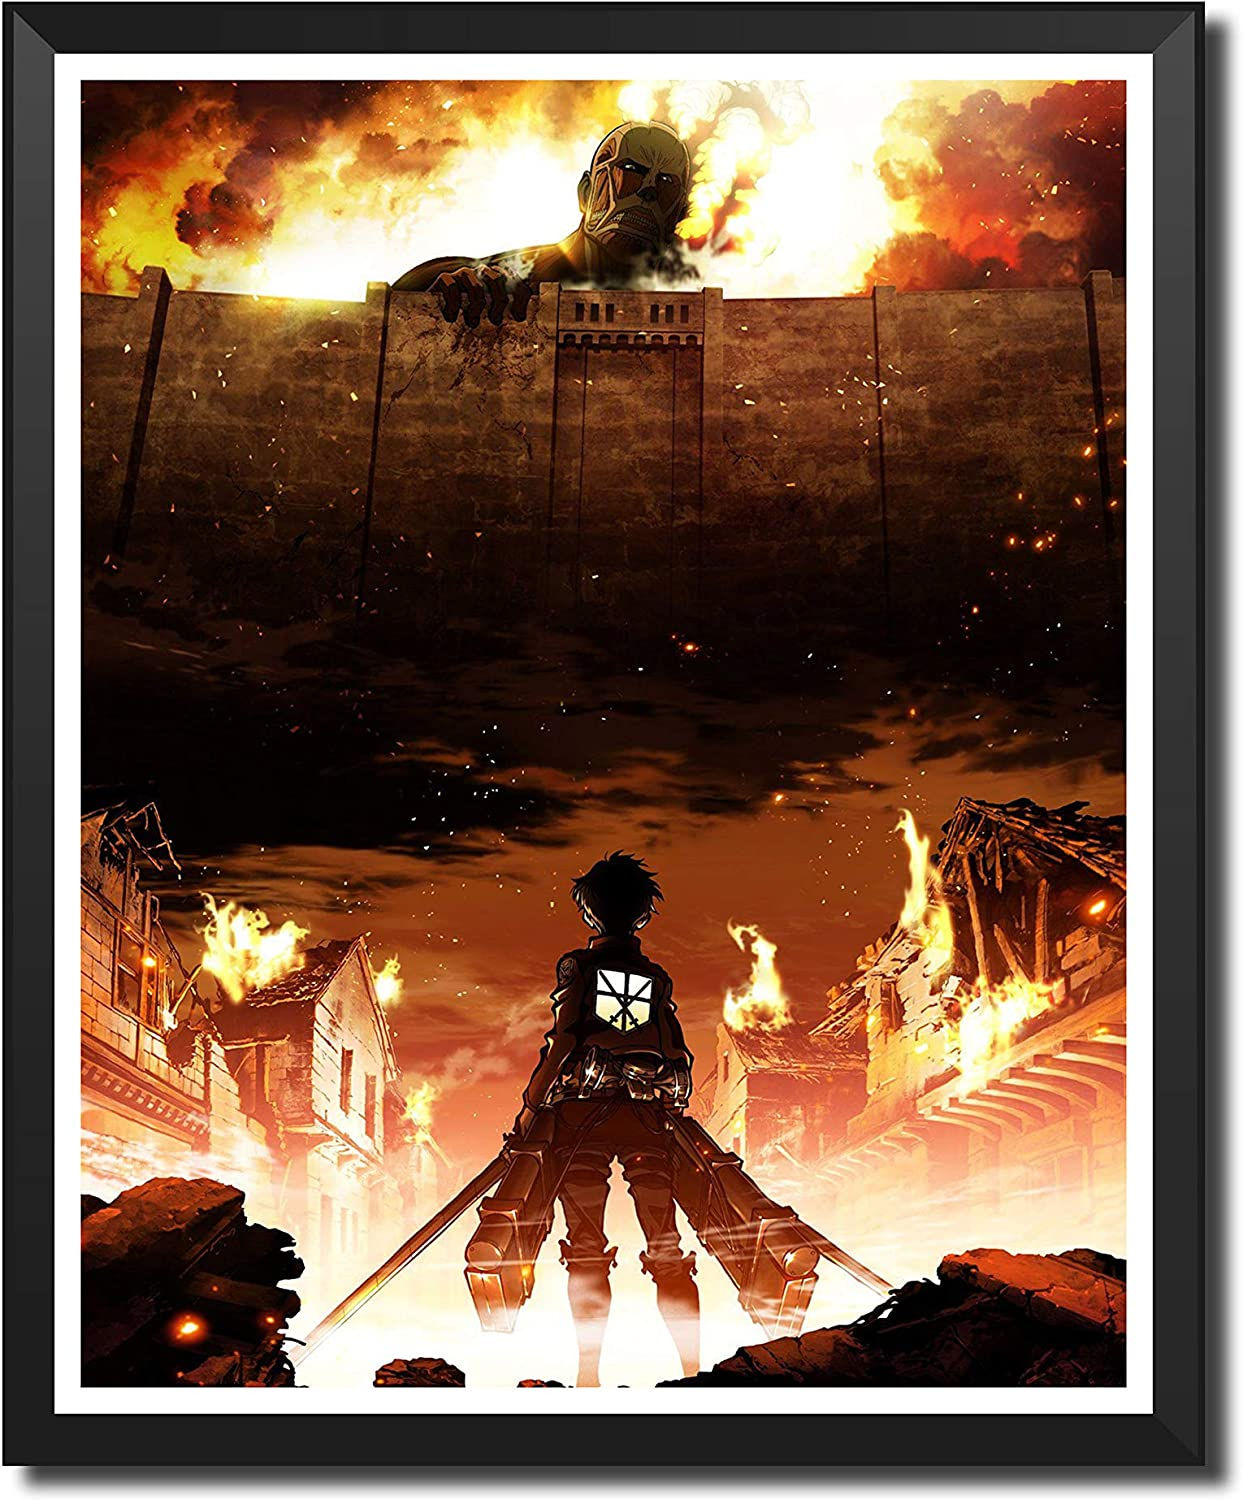 Yansang Anime Attack on Titan Fire Eren Jaeger Bathroom Decor Wall Decor Home Decor Canvas Print Poster,Unframed,8 x 10 Inches,Set of 1 Piece(Small Size)